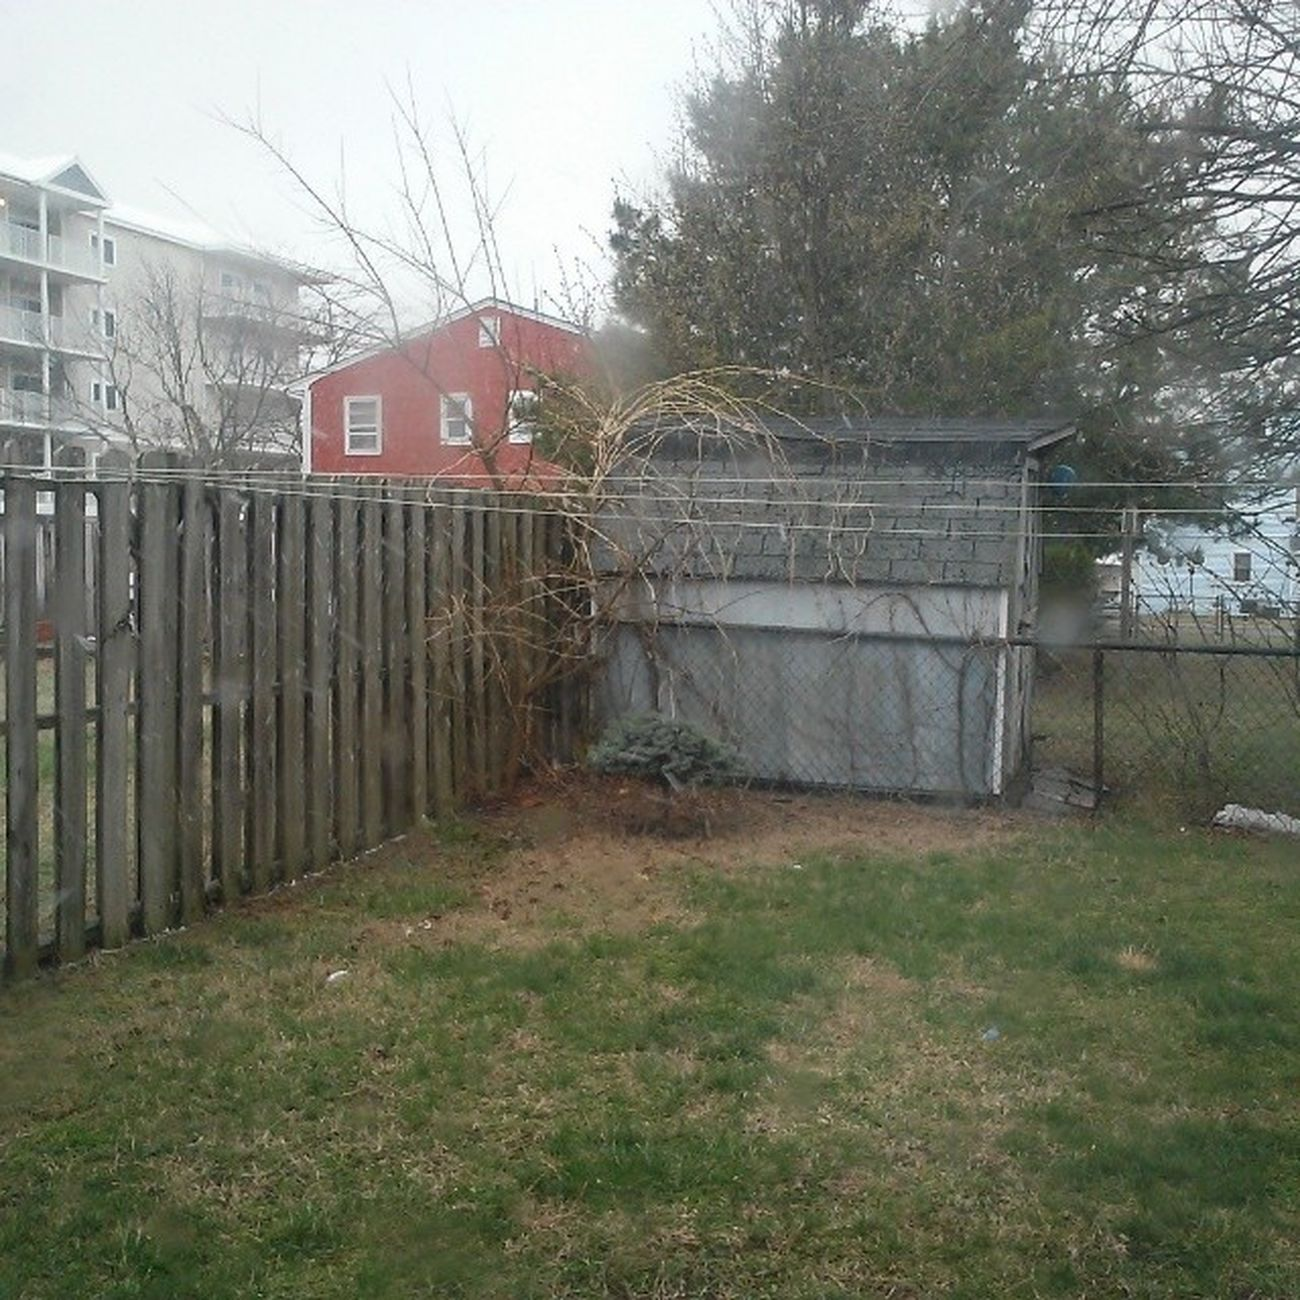 Need a better camera, but them there snow flurries and the winds are blowing good... Ocmd